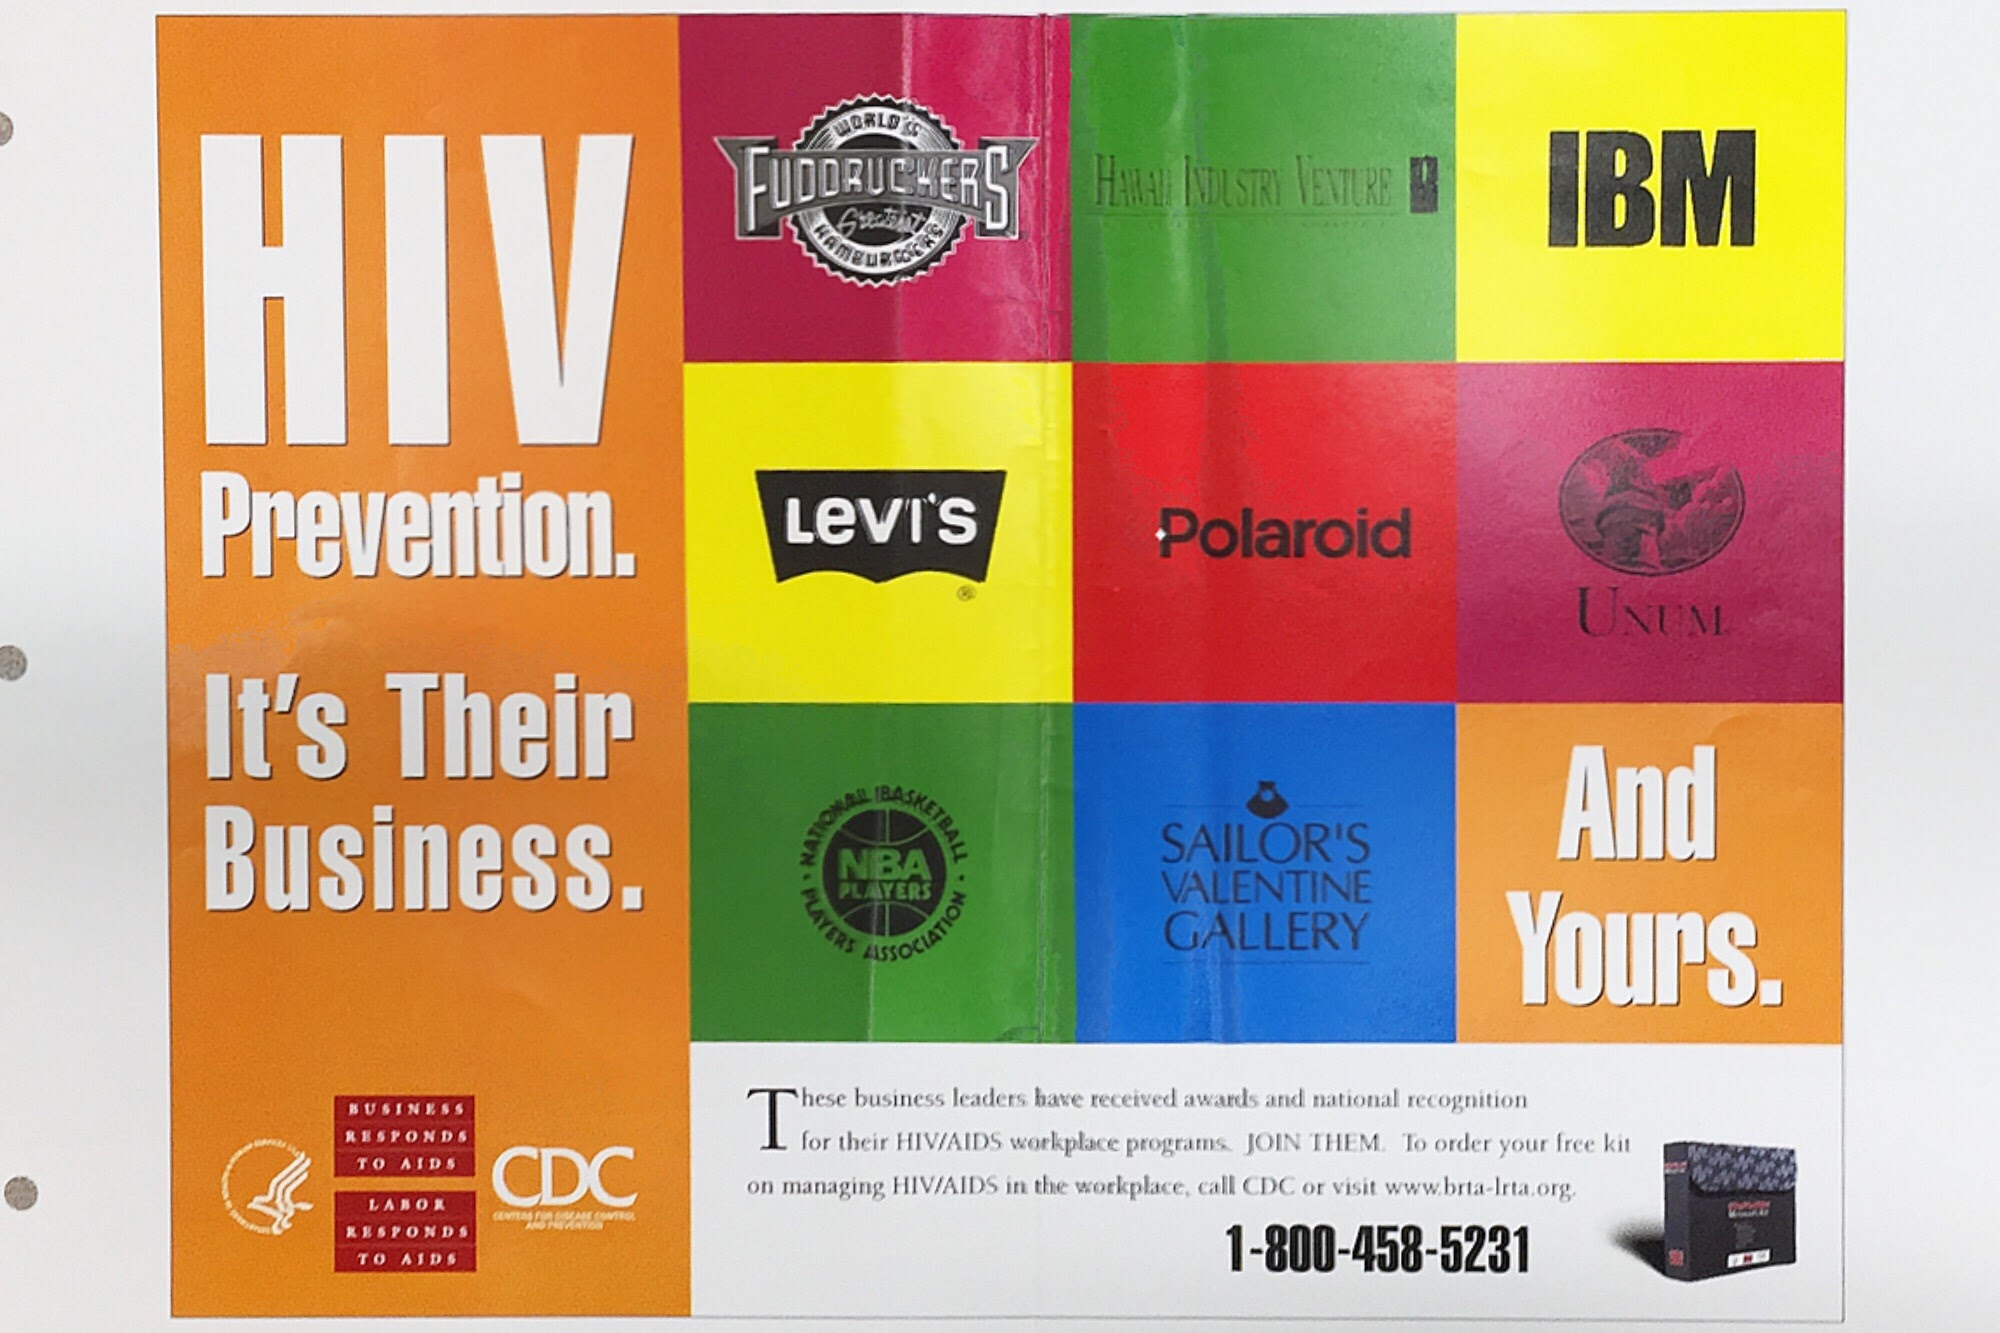 HIV prevention. it's their business. And yours.